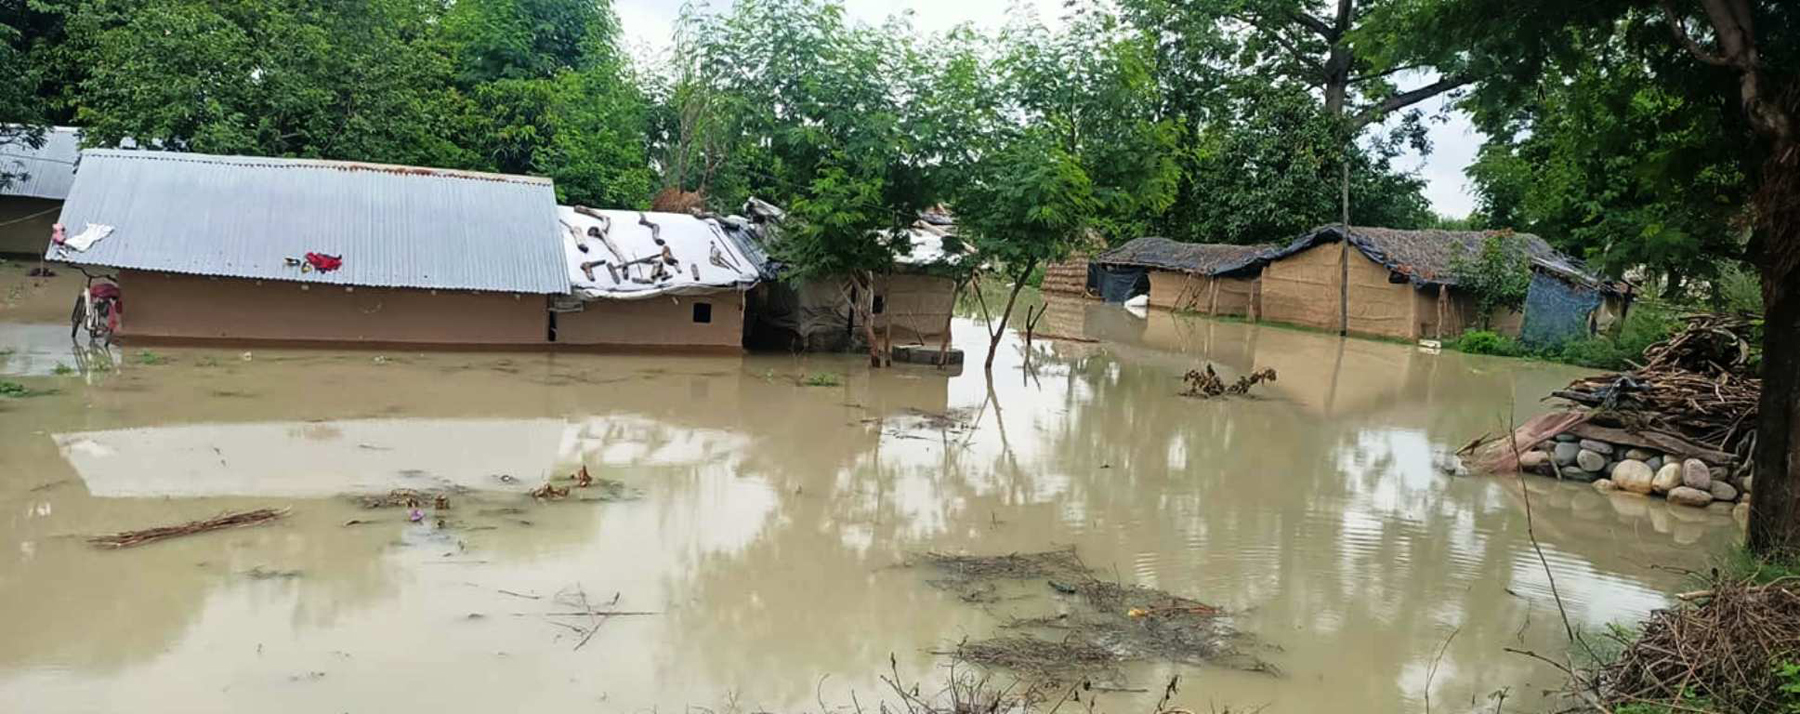 Flood survivors in Kanchanpur face hand-to-mouth problem